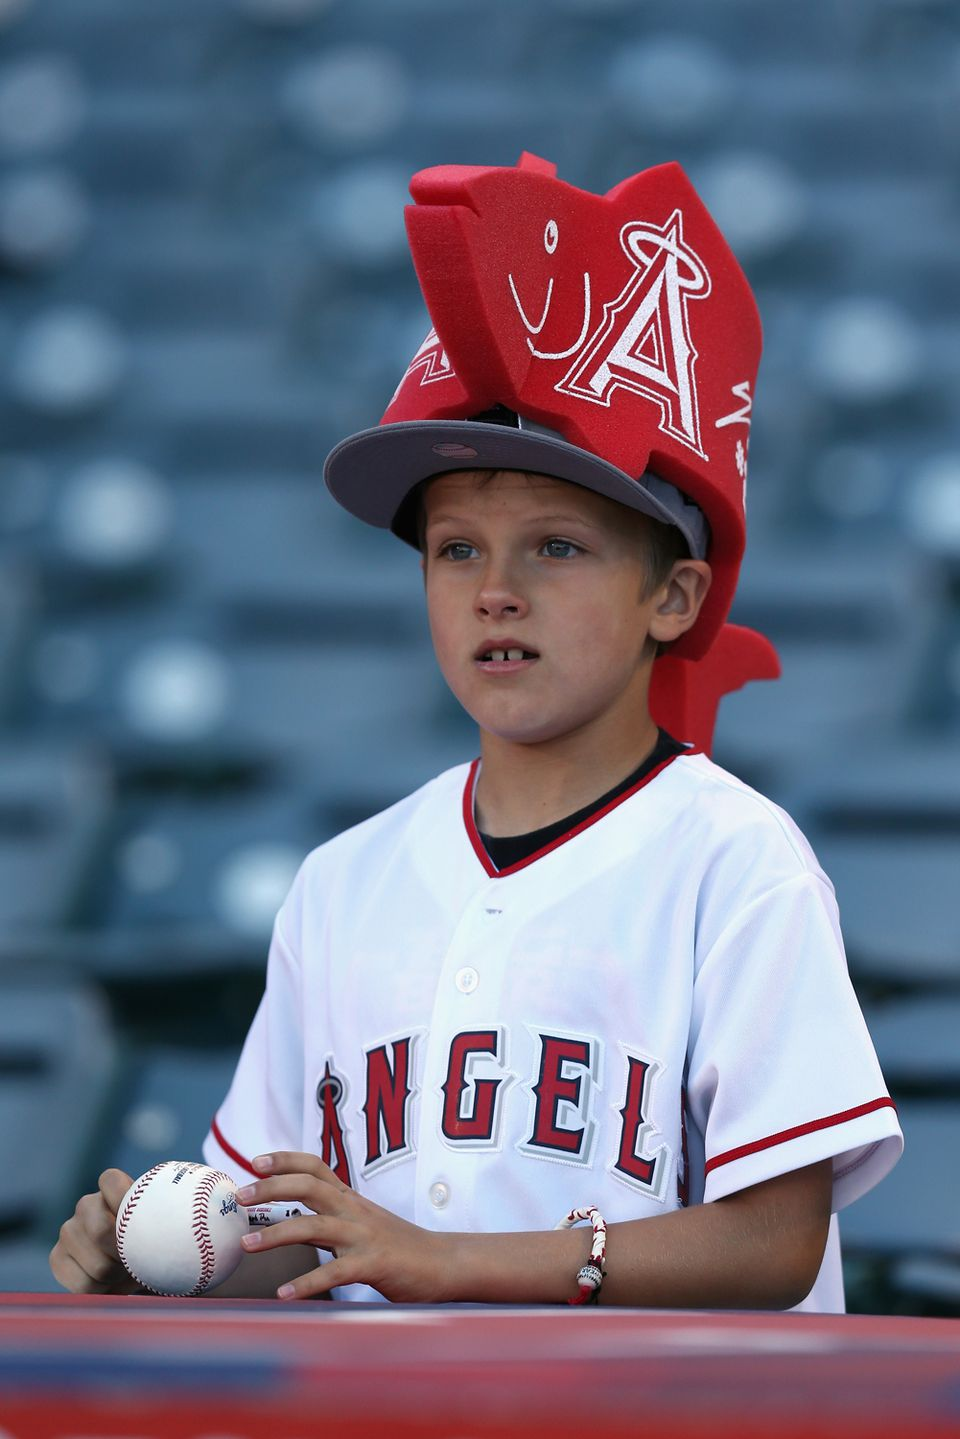 getty-angels_1500_481787825.jpg